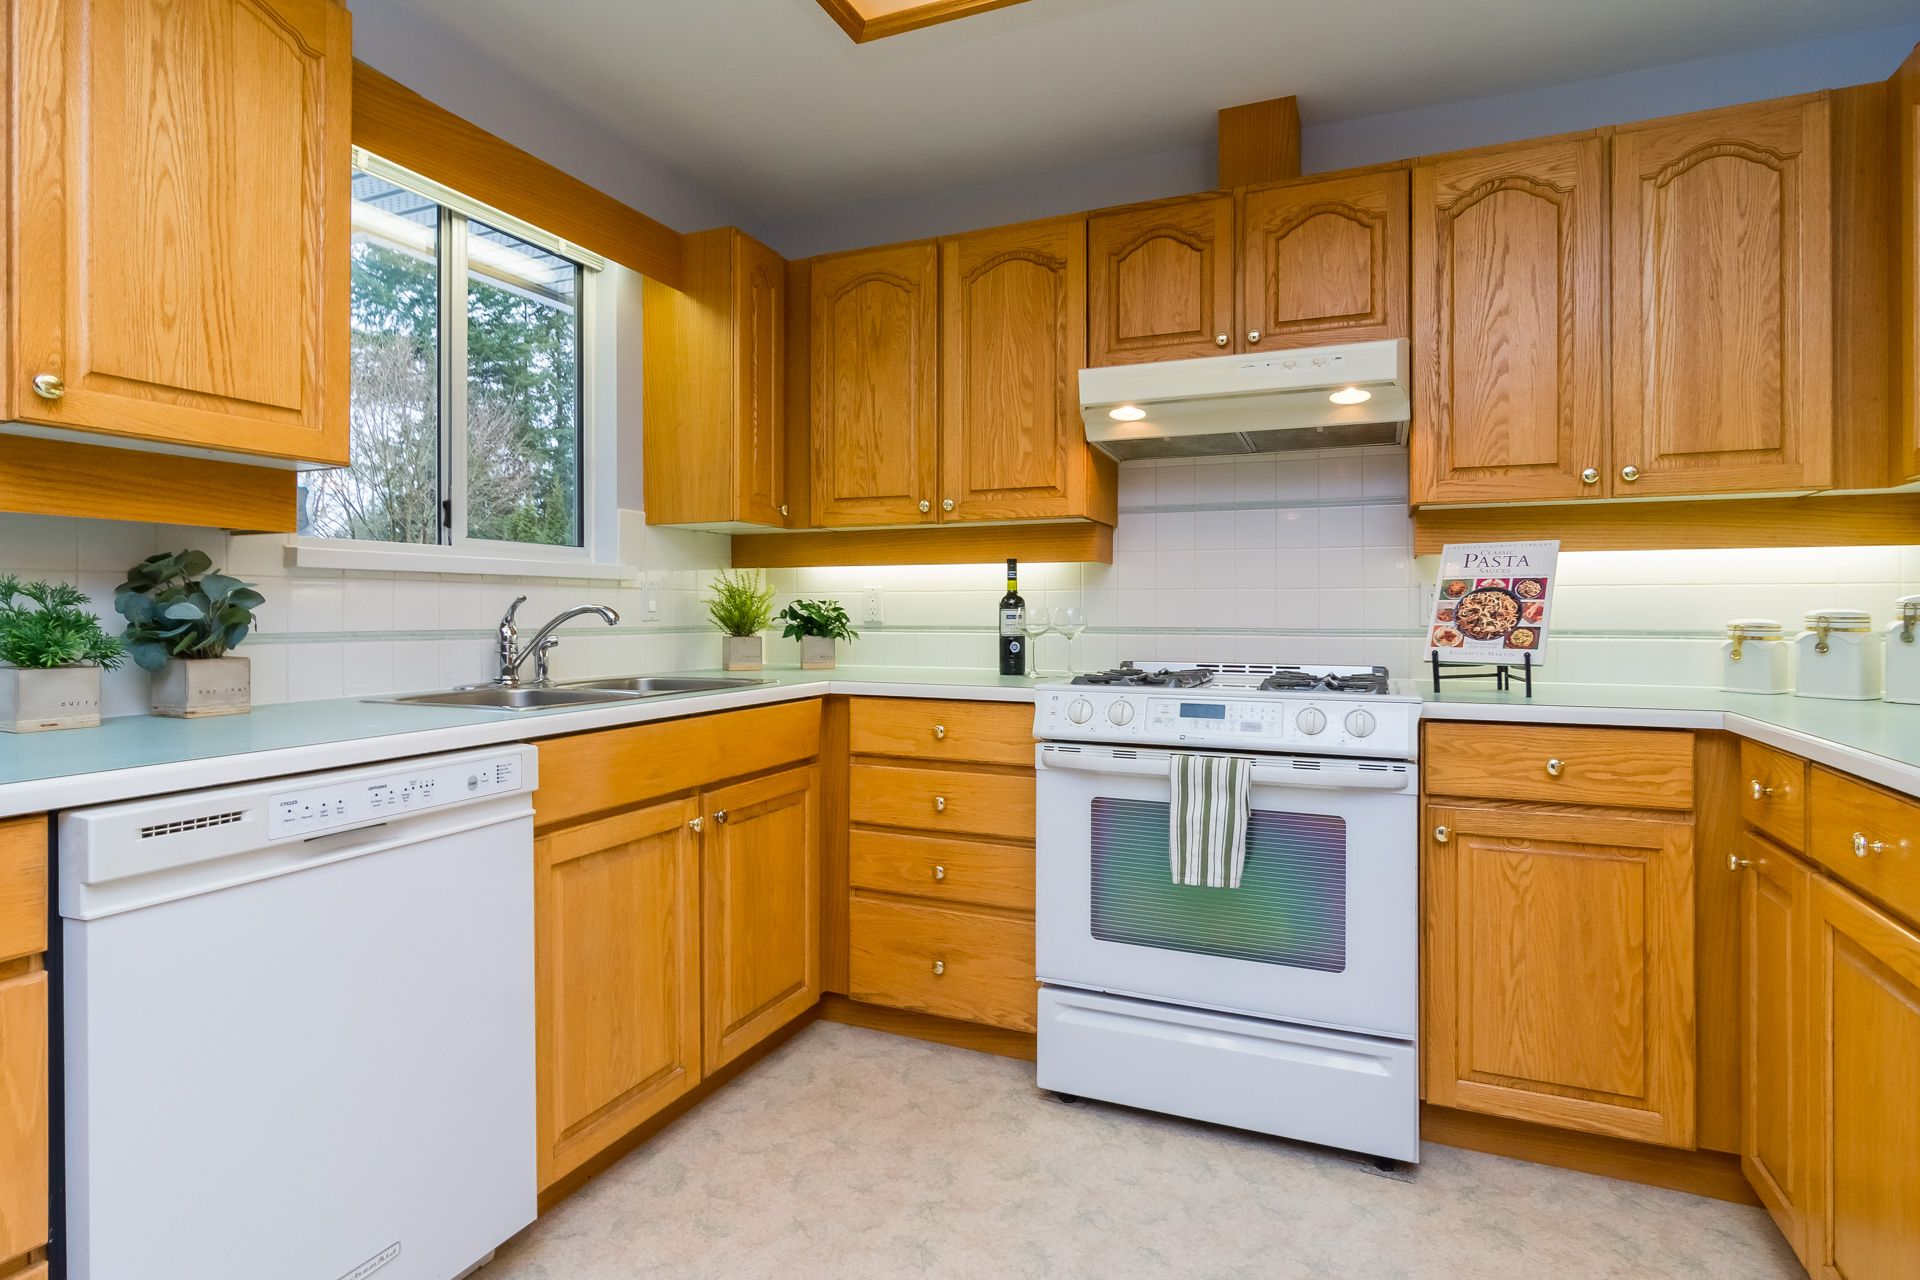 """Photo 13: Photos: 19941 37 Avenue in Langley: Brookswood Langley House for sale in """"Brookswood"""" : MLS®# R2240474"""